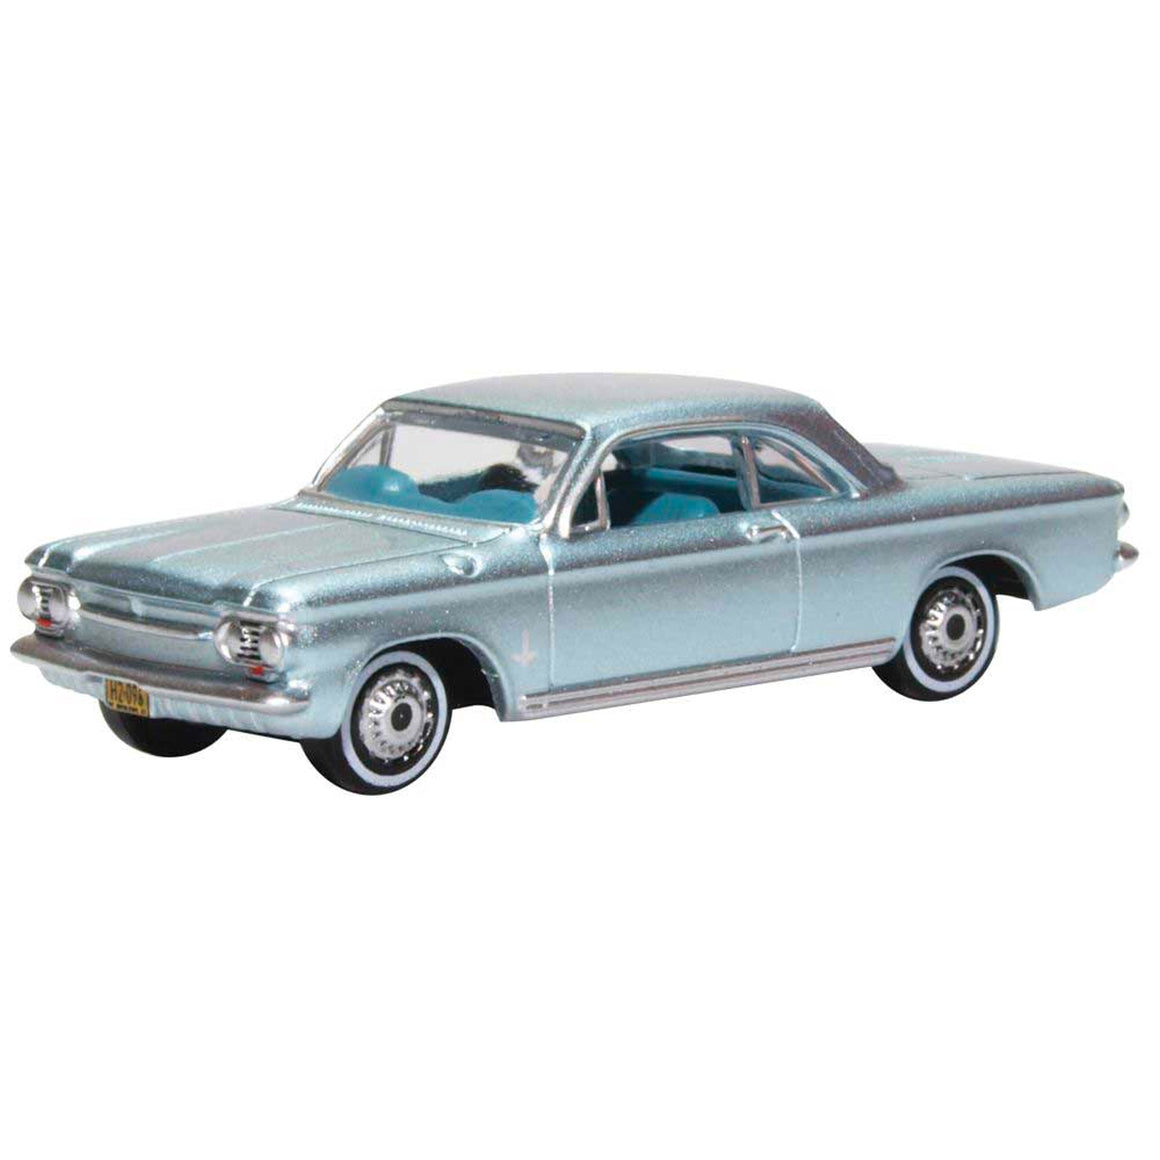 HO Scale: 1963 Chevrolet Corvair Coupe - Satin Silver